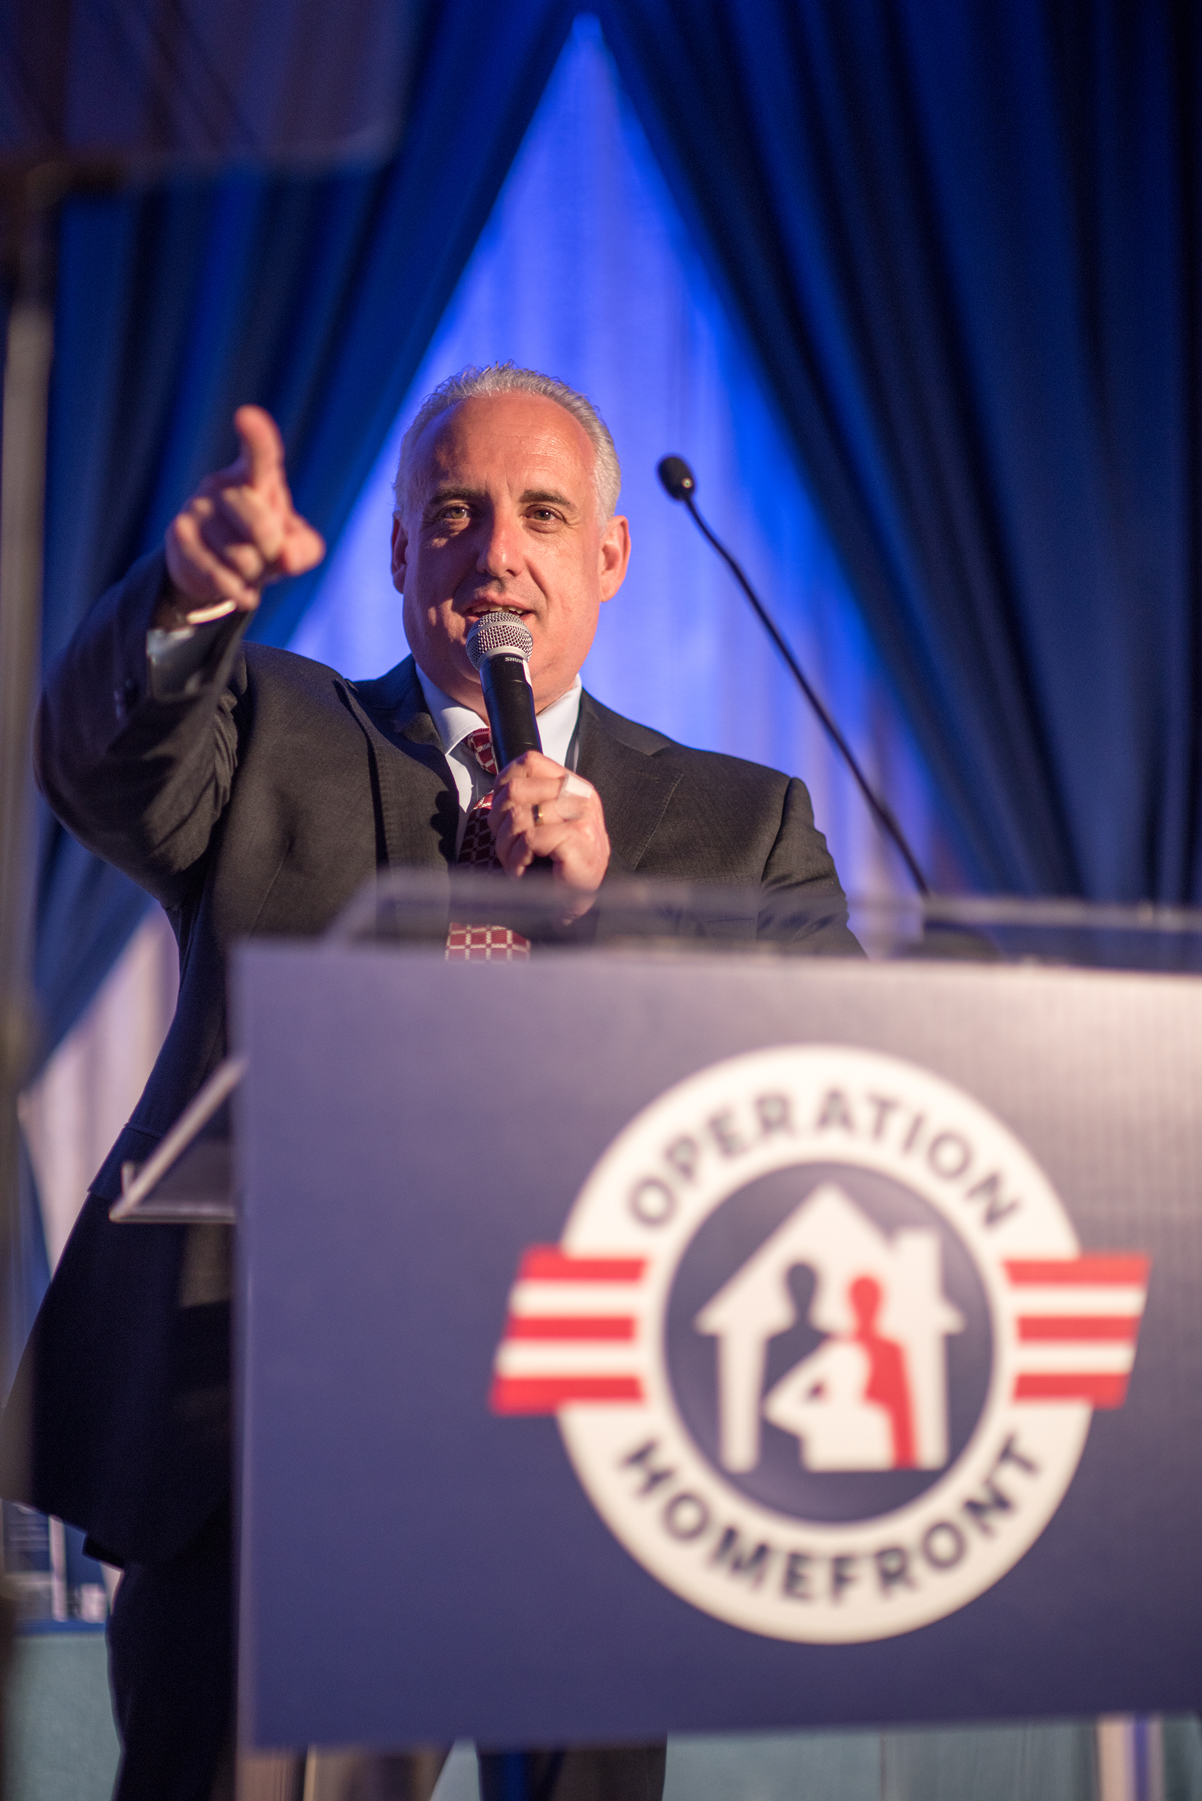 Carnival's Brand Ambassador John Heald Serves as Emcee for Operation Homefront's Military Child of the Year Awards in Washington, DC